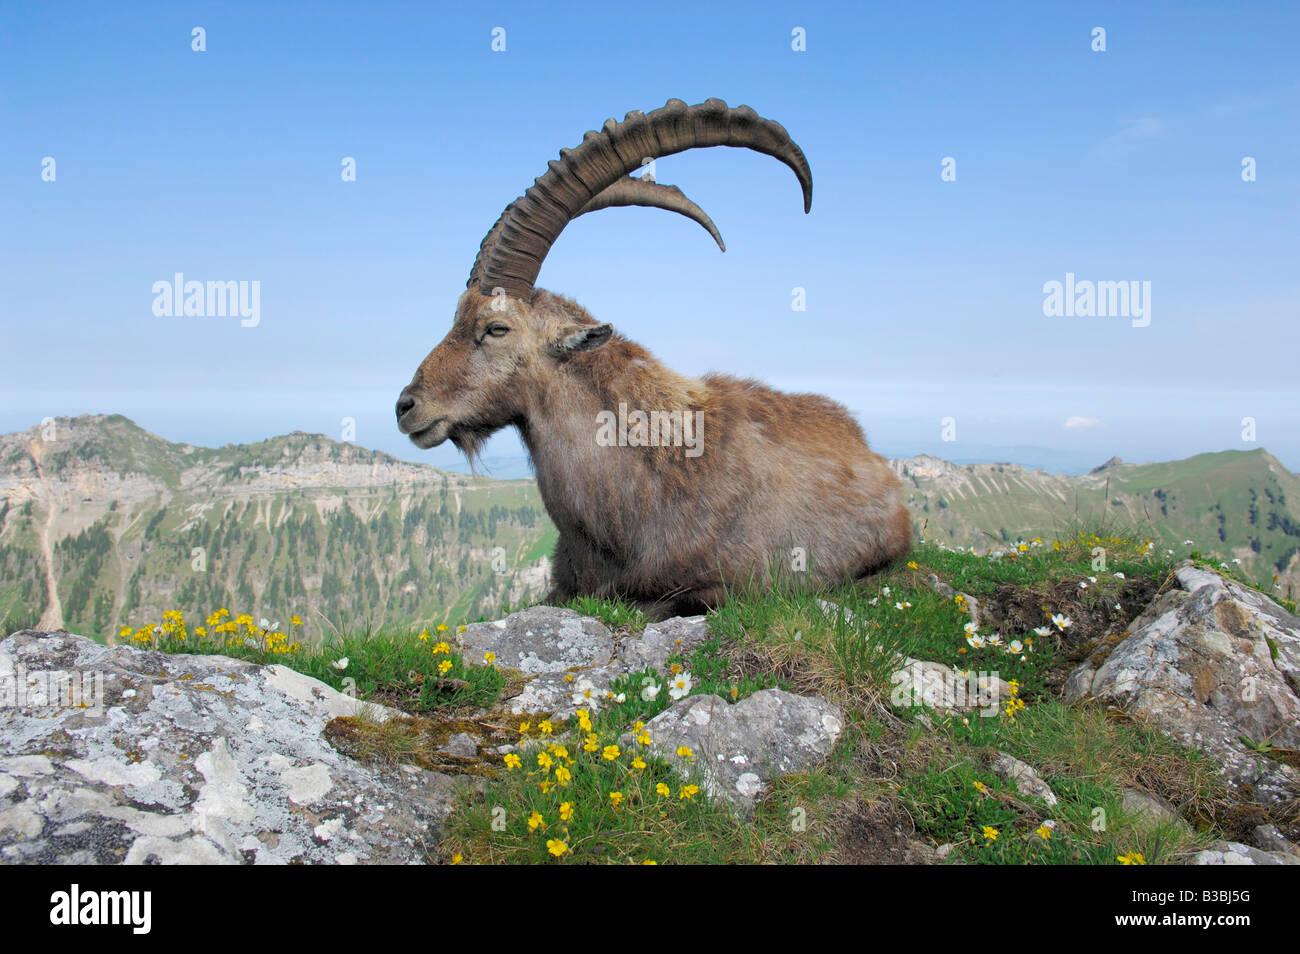 Alpine Ibex Capra ibex adult among flowers Niederhorn Interlaken Switzerland - Stock Image